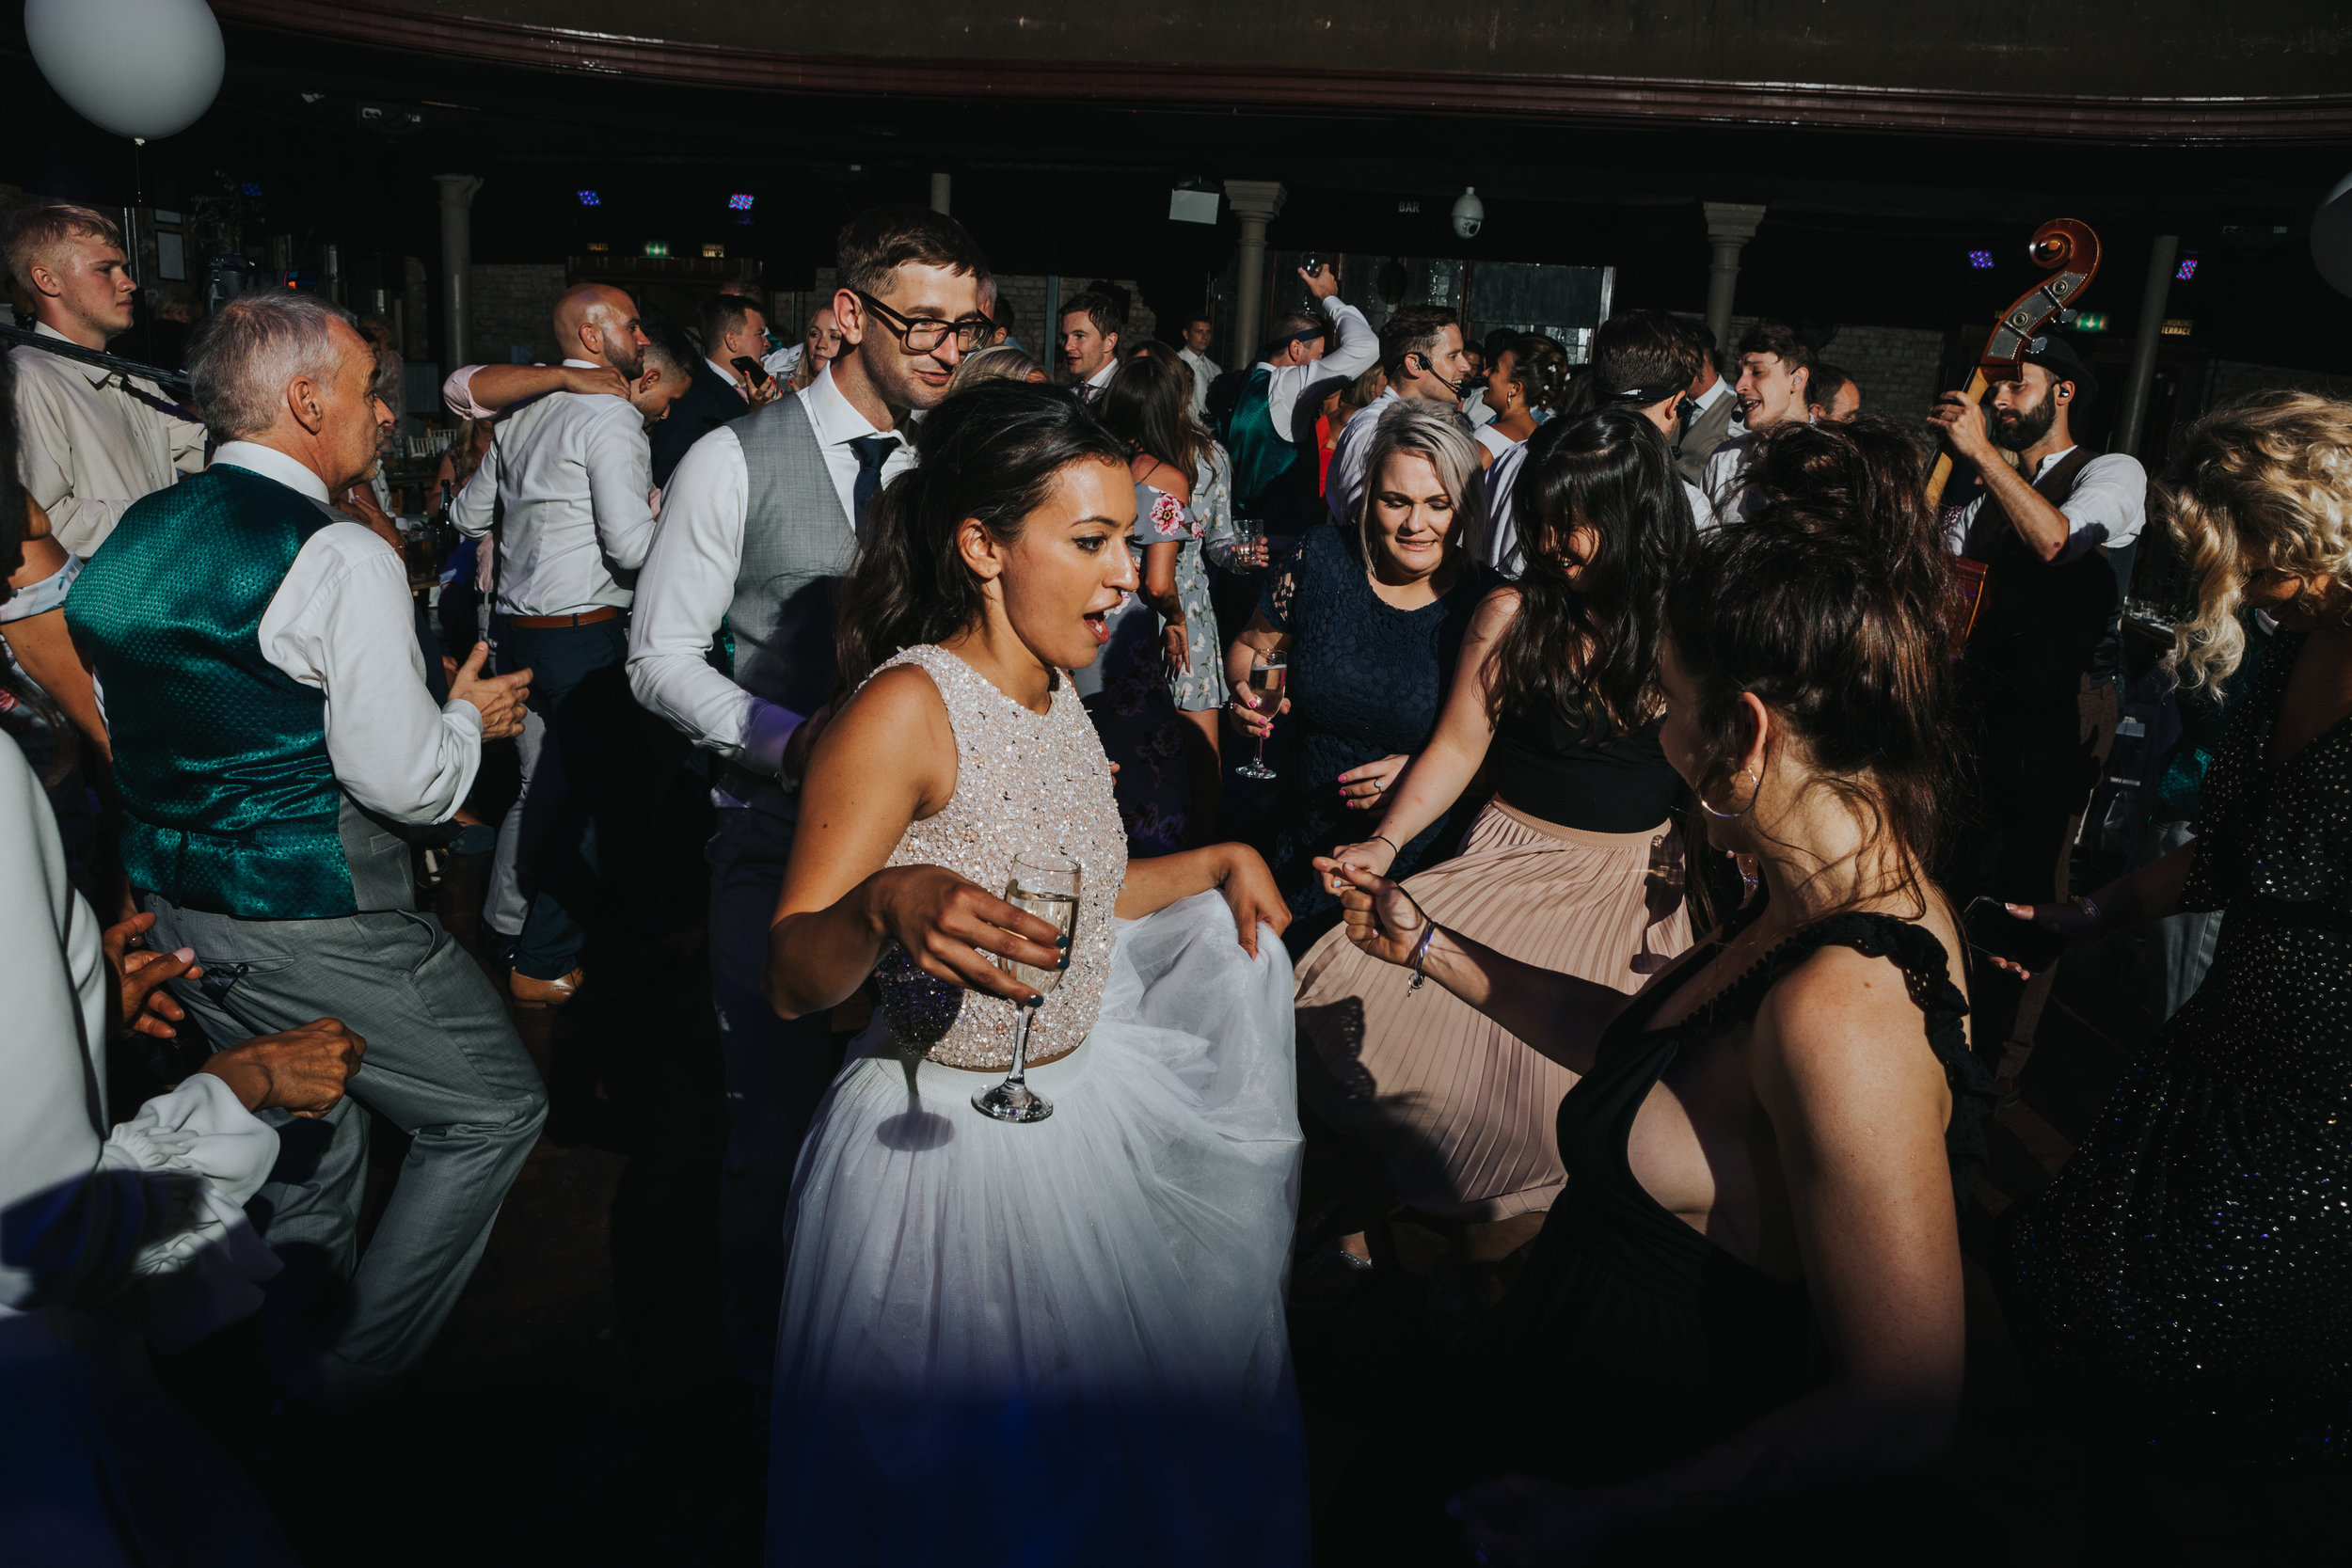 Bride dances in the middle of her friends swishing her skirt around.